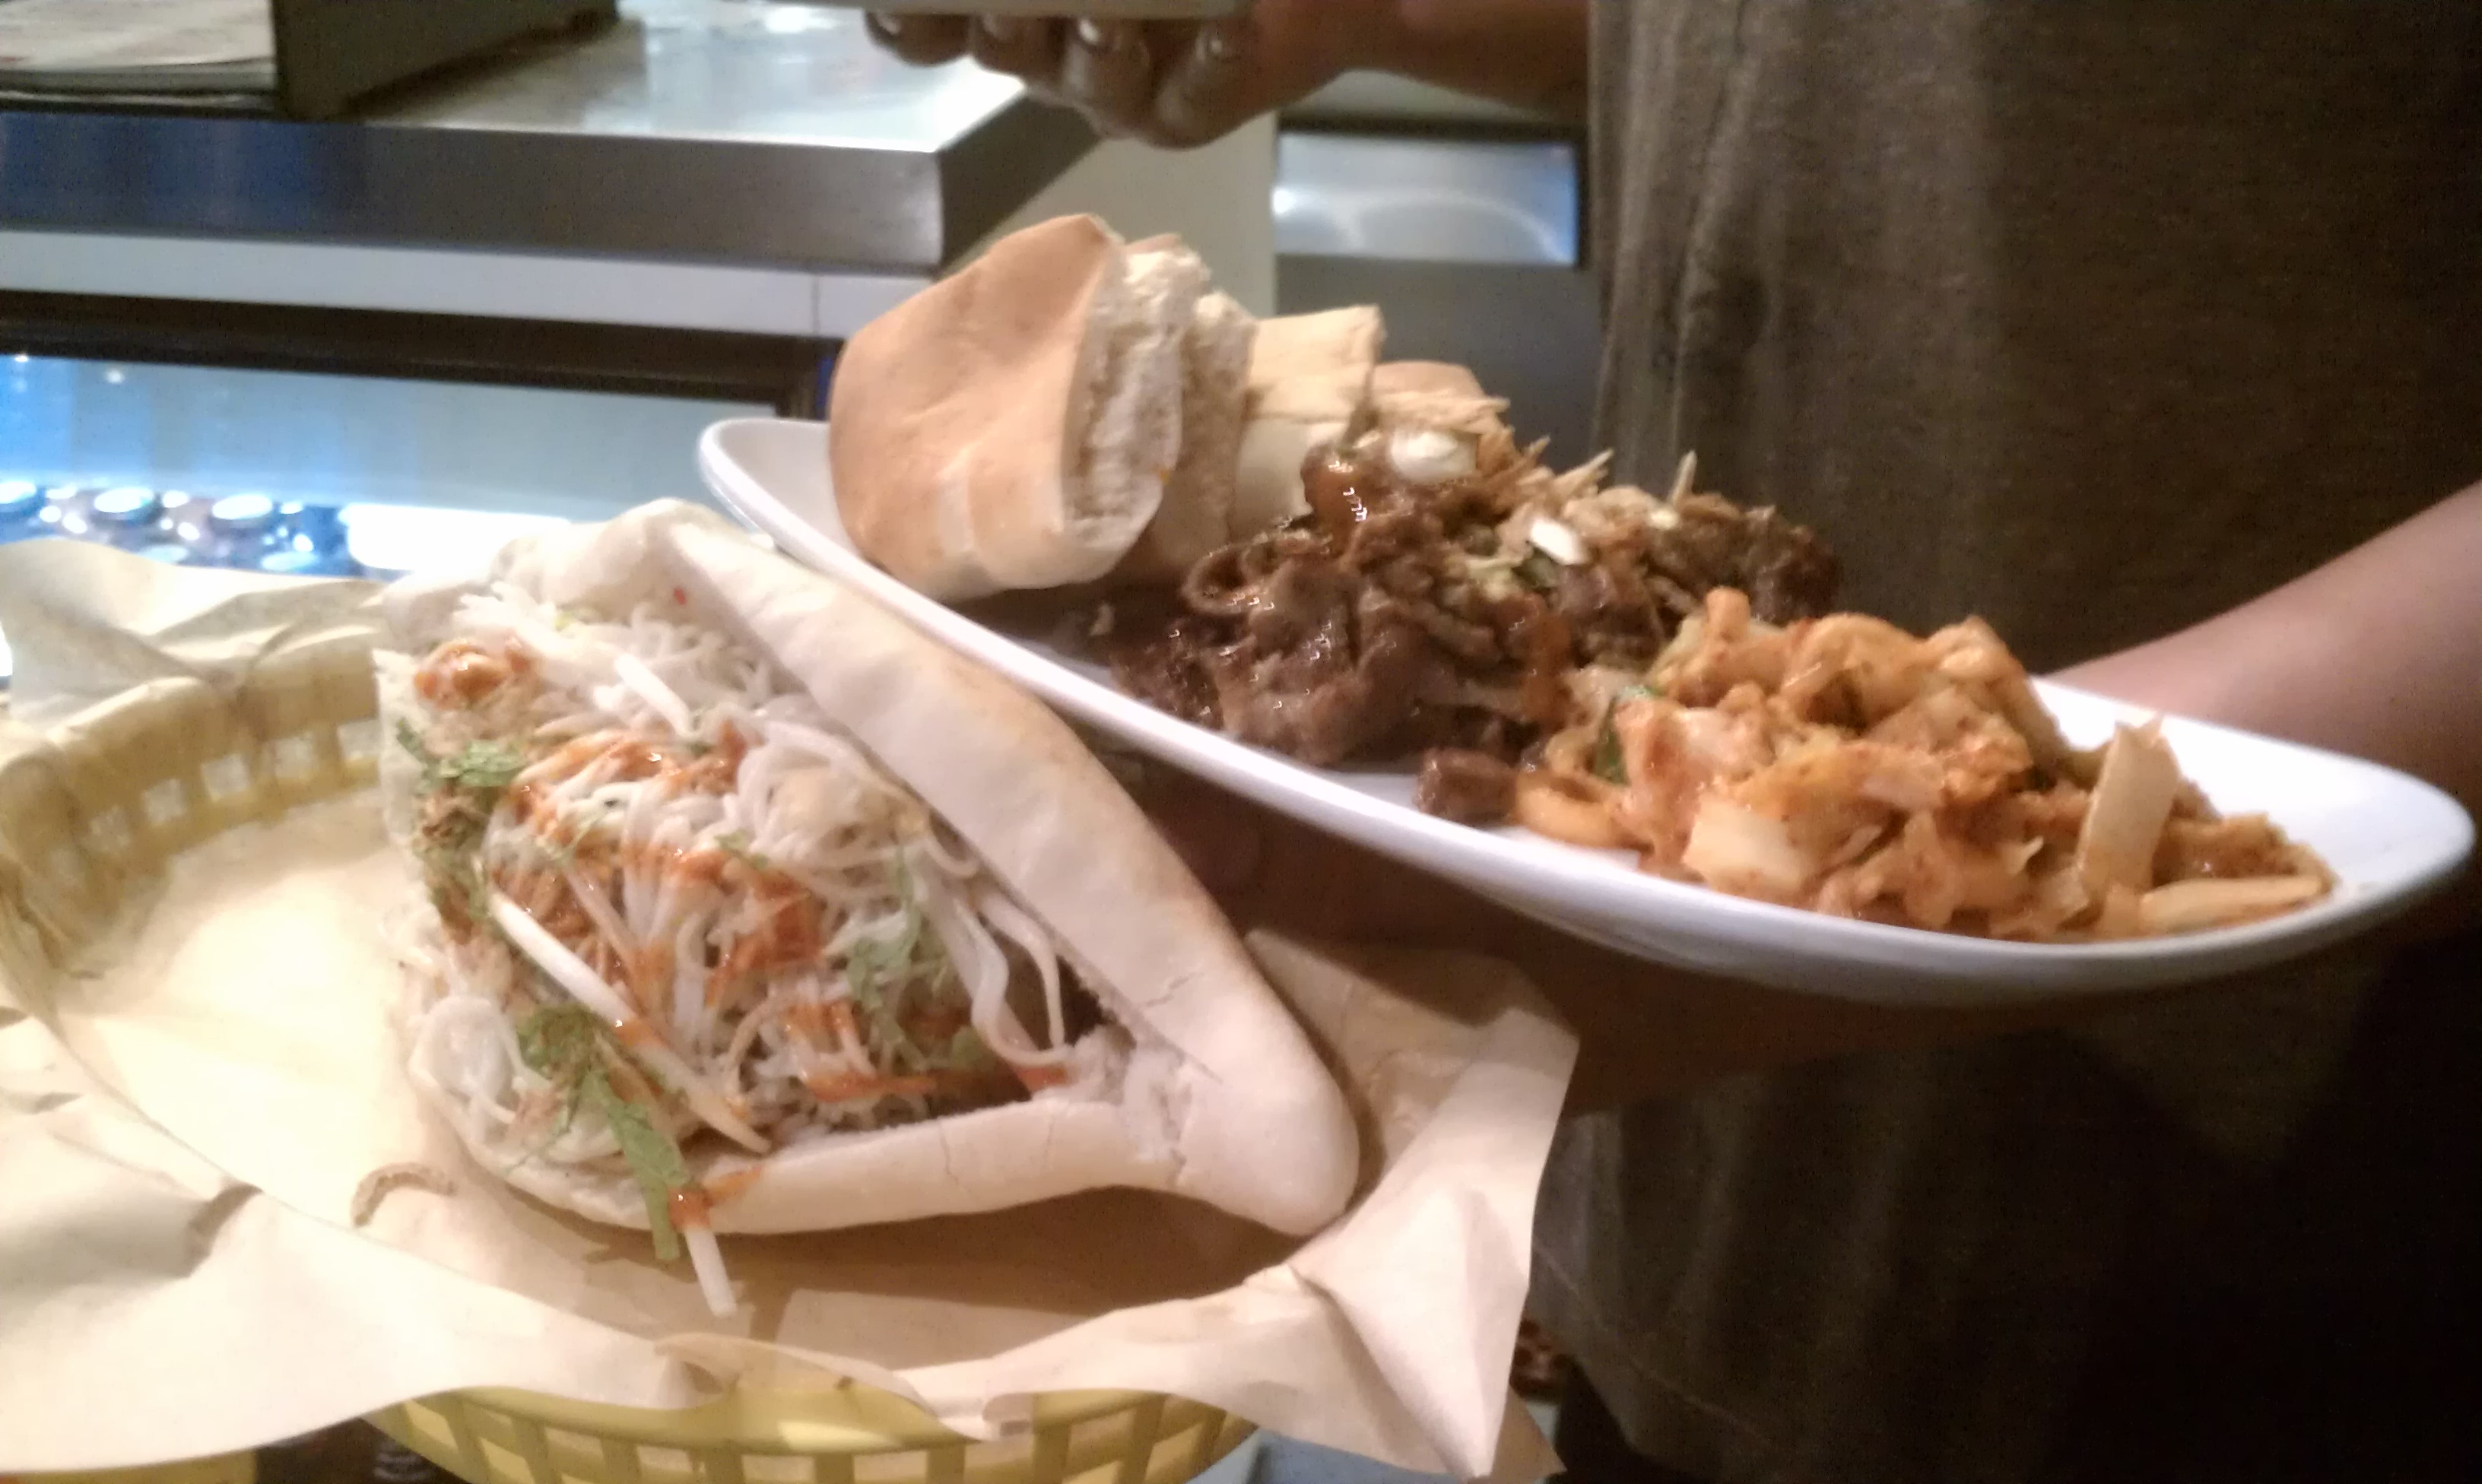 Asian meatball and Kogi beef platter at Belly Shack. (WBEZ/Niala Boodhoo)